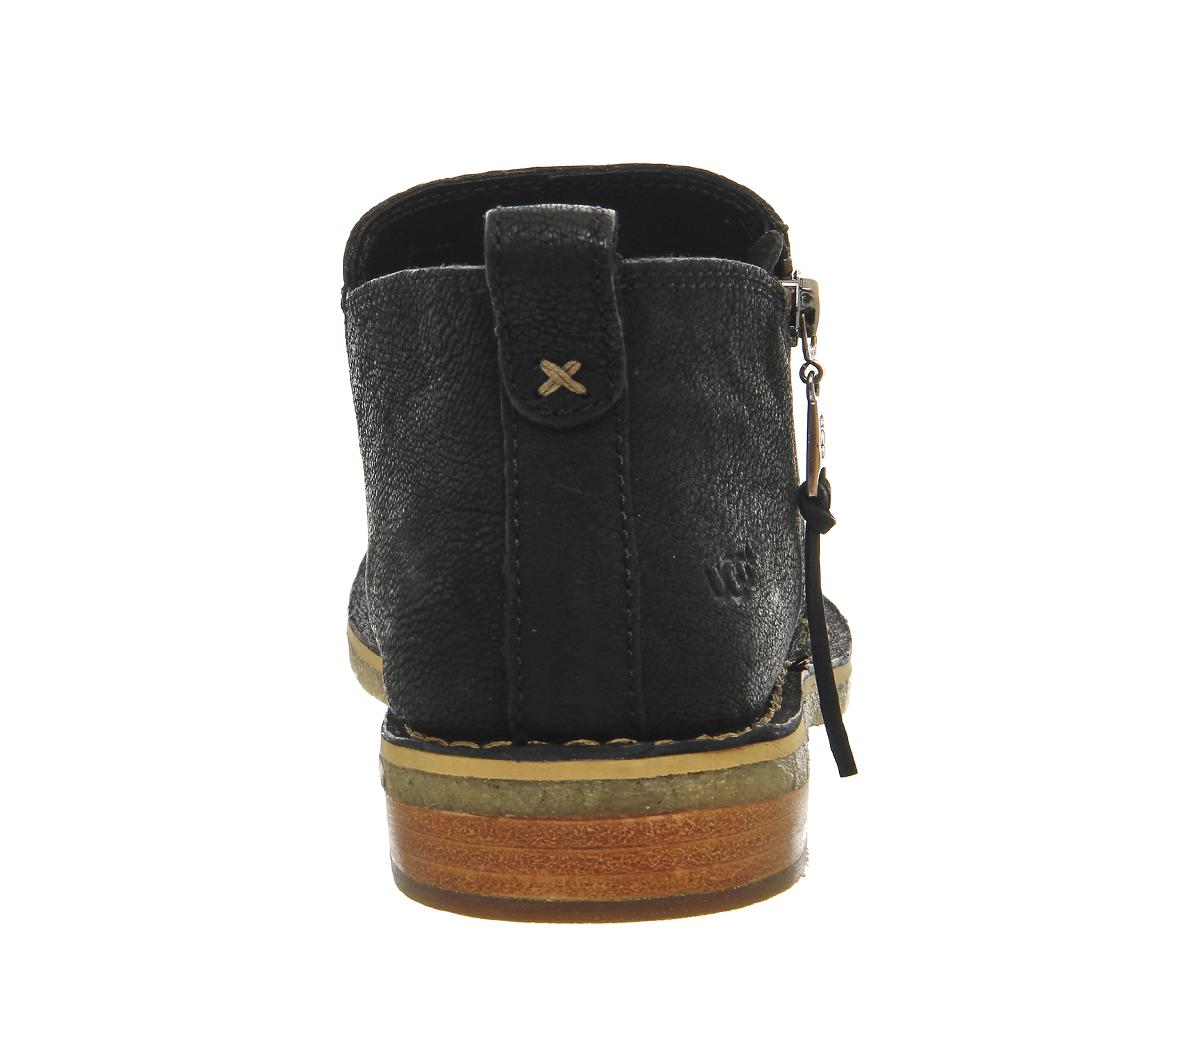 UGG Clementine Ankle Boots in Black